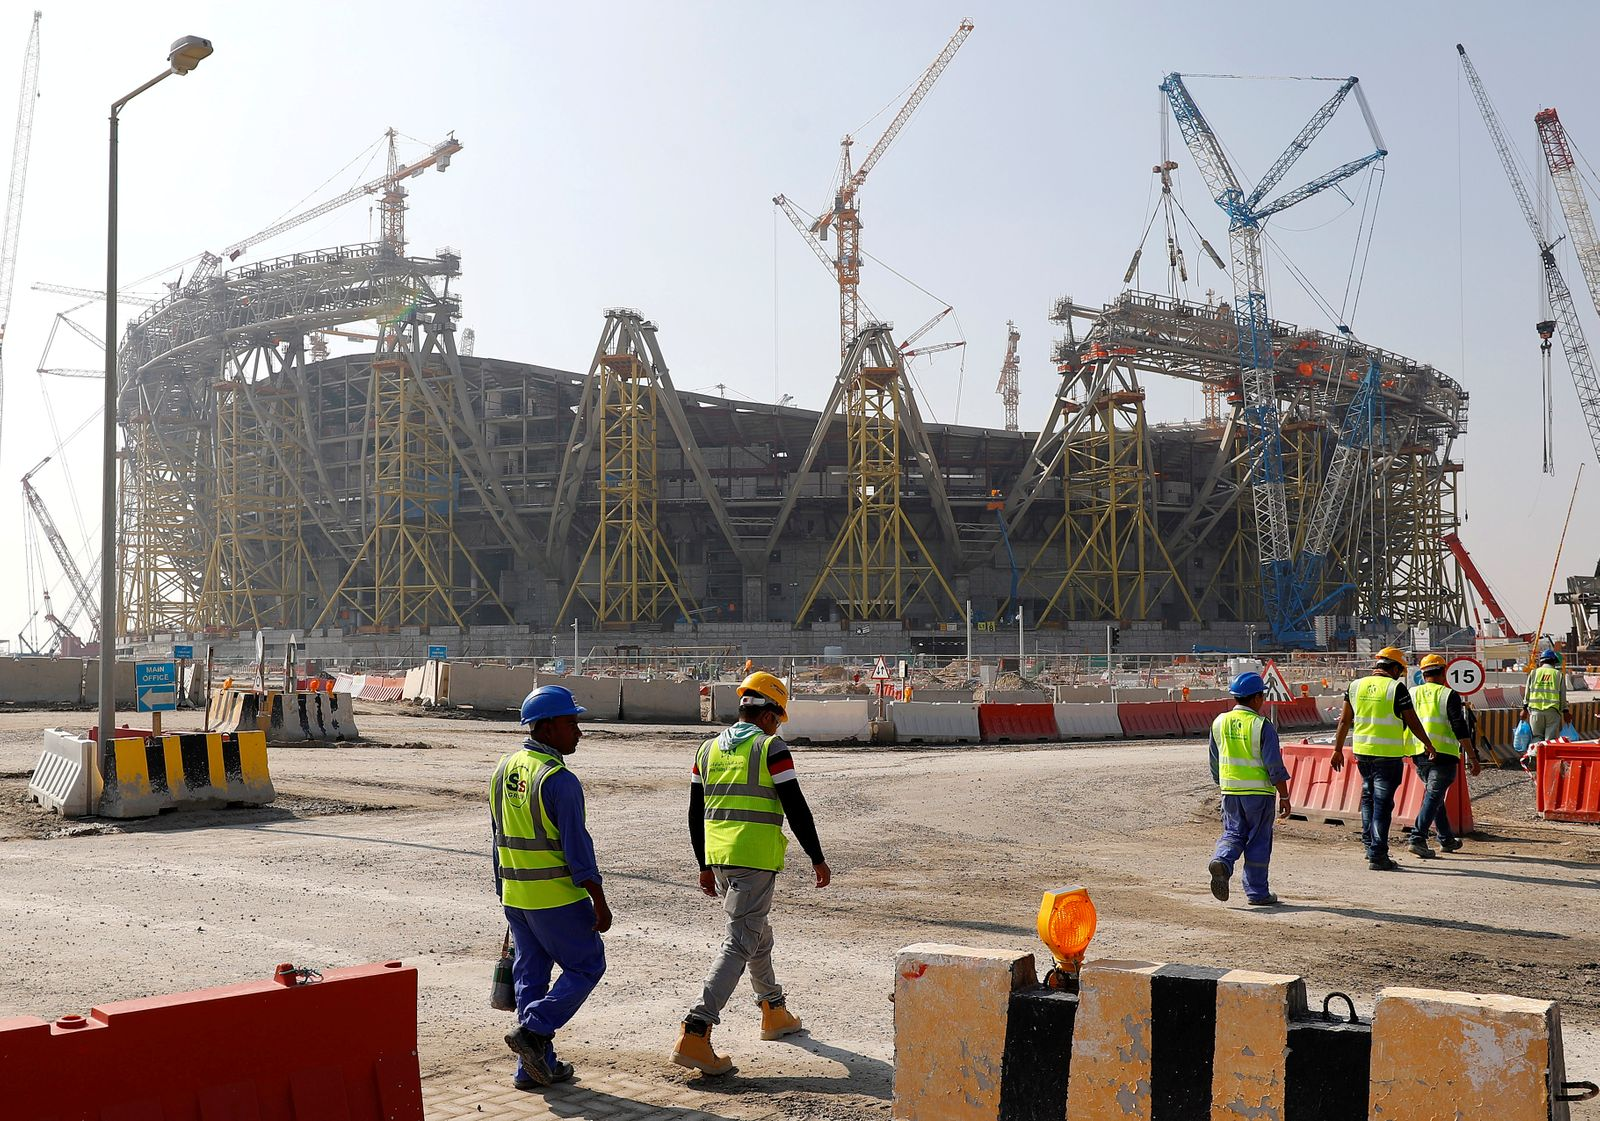 FILE PHOTO: A general view shows the Education city stadium built for the upcoming 2022 Fifa soccer World Cup during a stadium tour in Doha